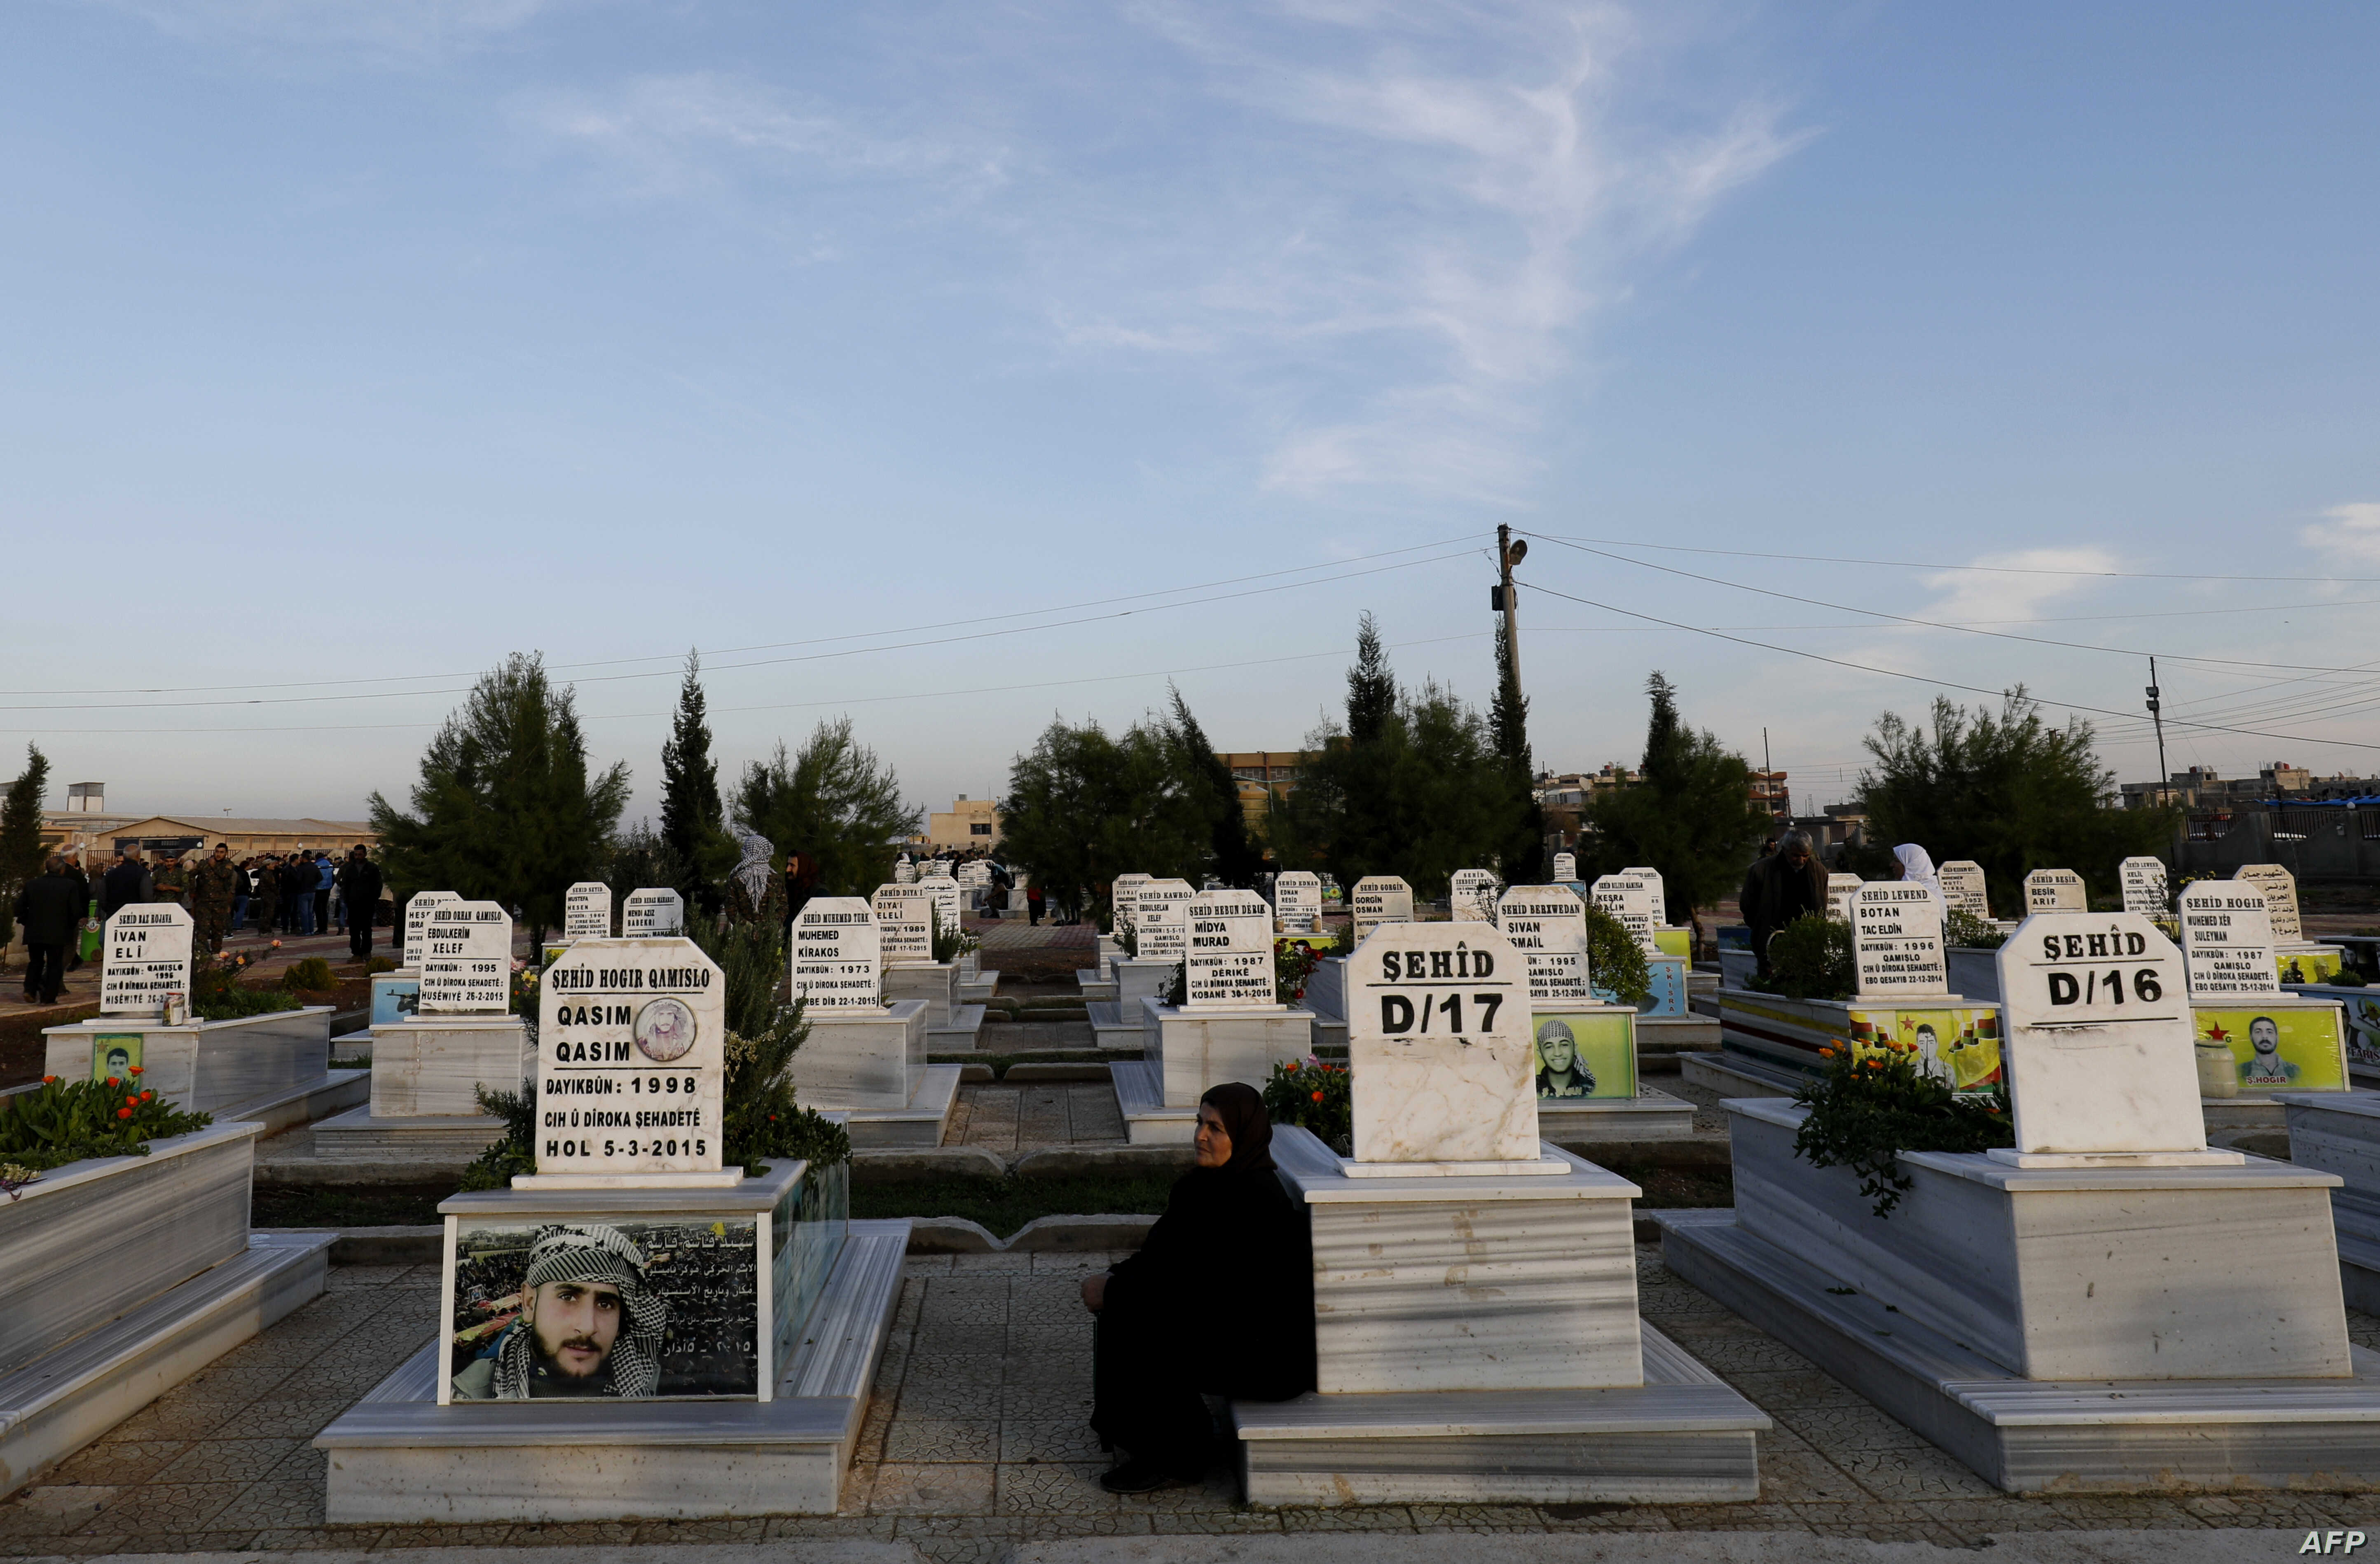 FILE - A woman sits among tombs in a cemetery during the funeral for a Syrian Democratic Forces fighter killed in the town of Hajin during battles against the Islamic State group, in the Kurdish-controlled city of Qamishly in northeastern Syria, on D...